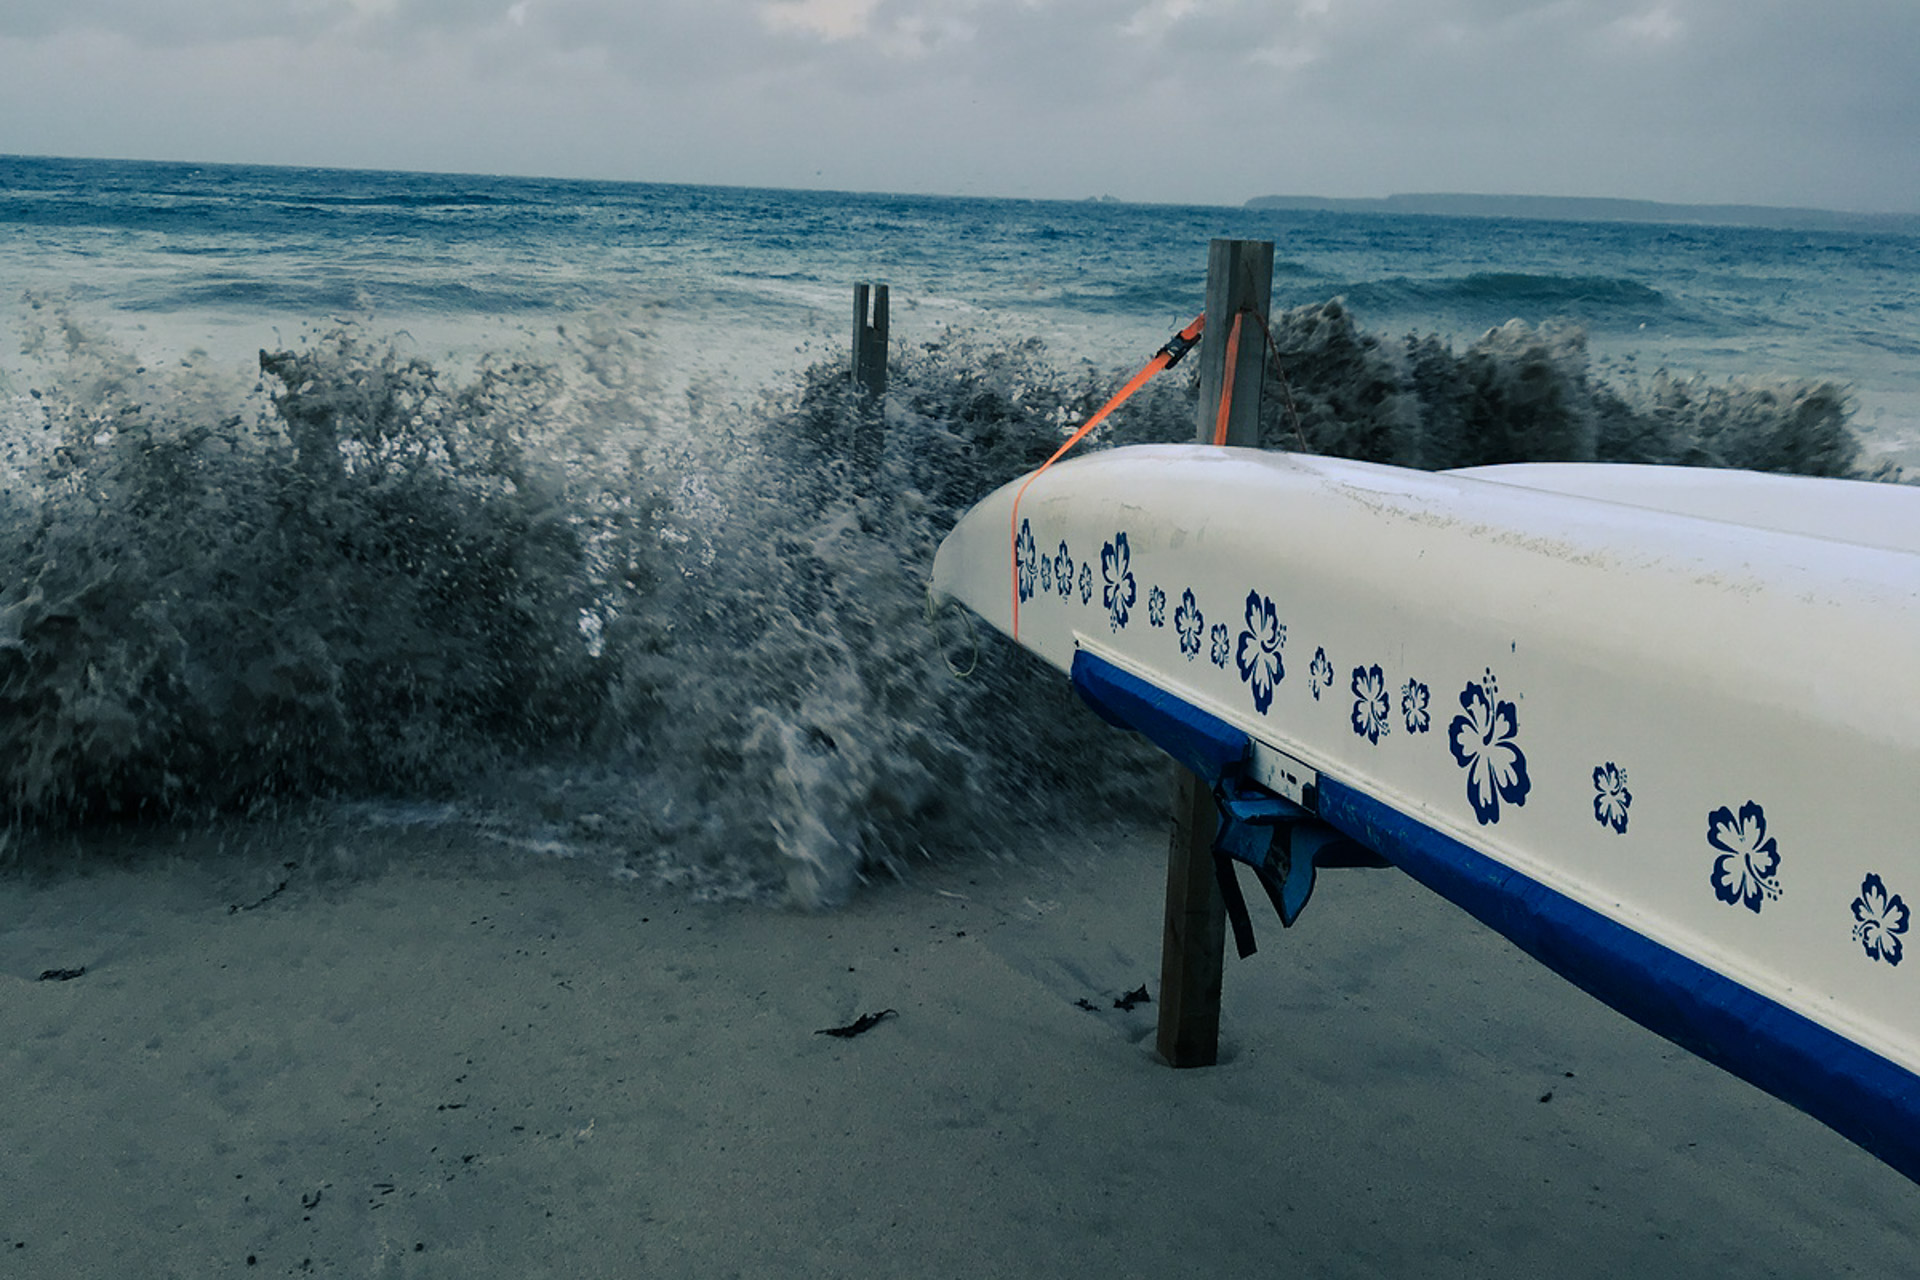 Rough sea and the outrigger